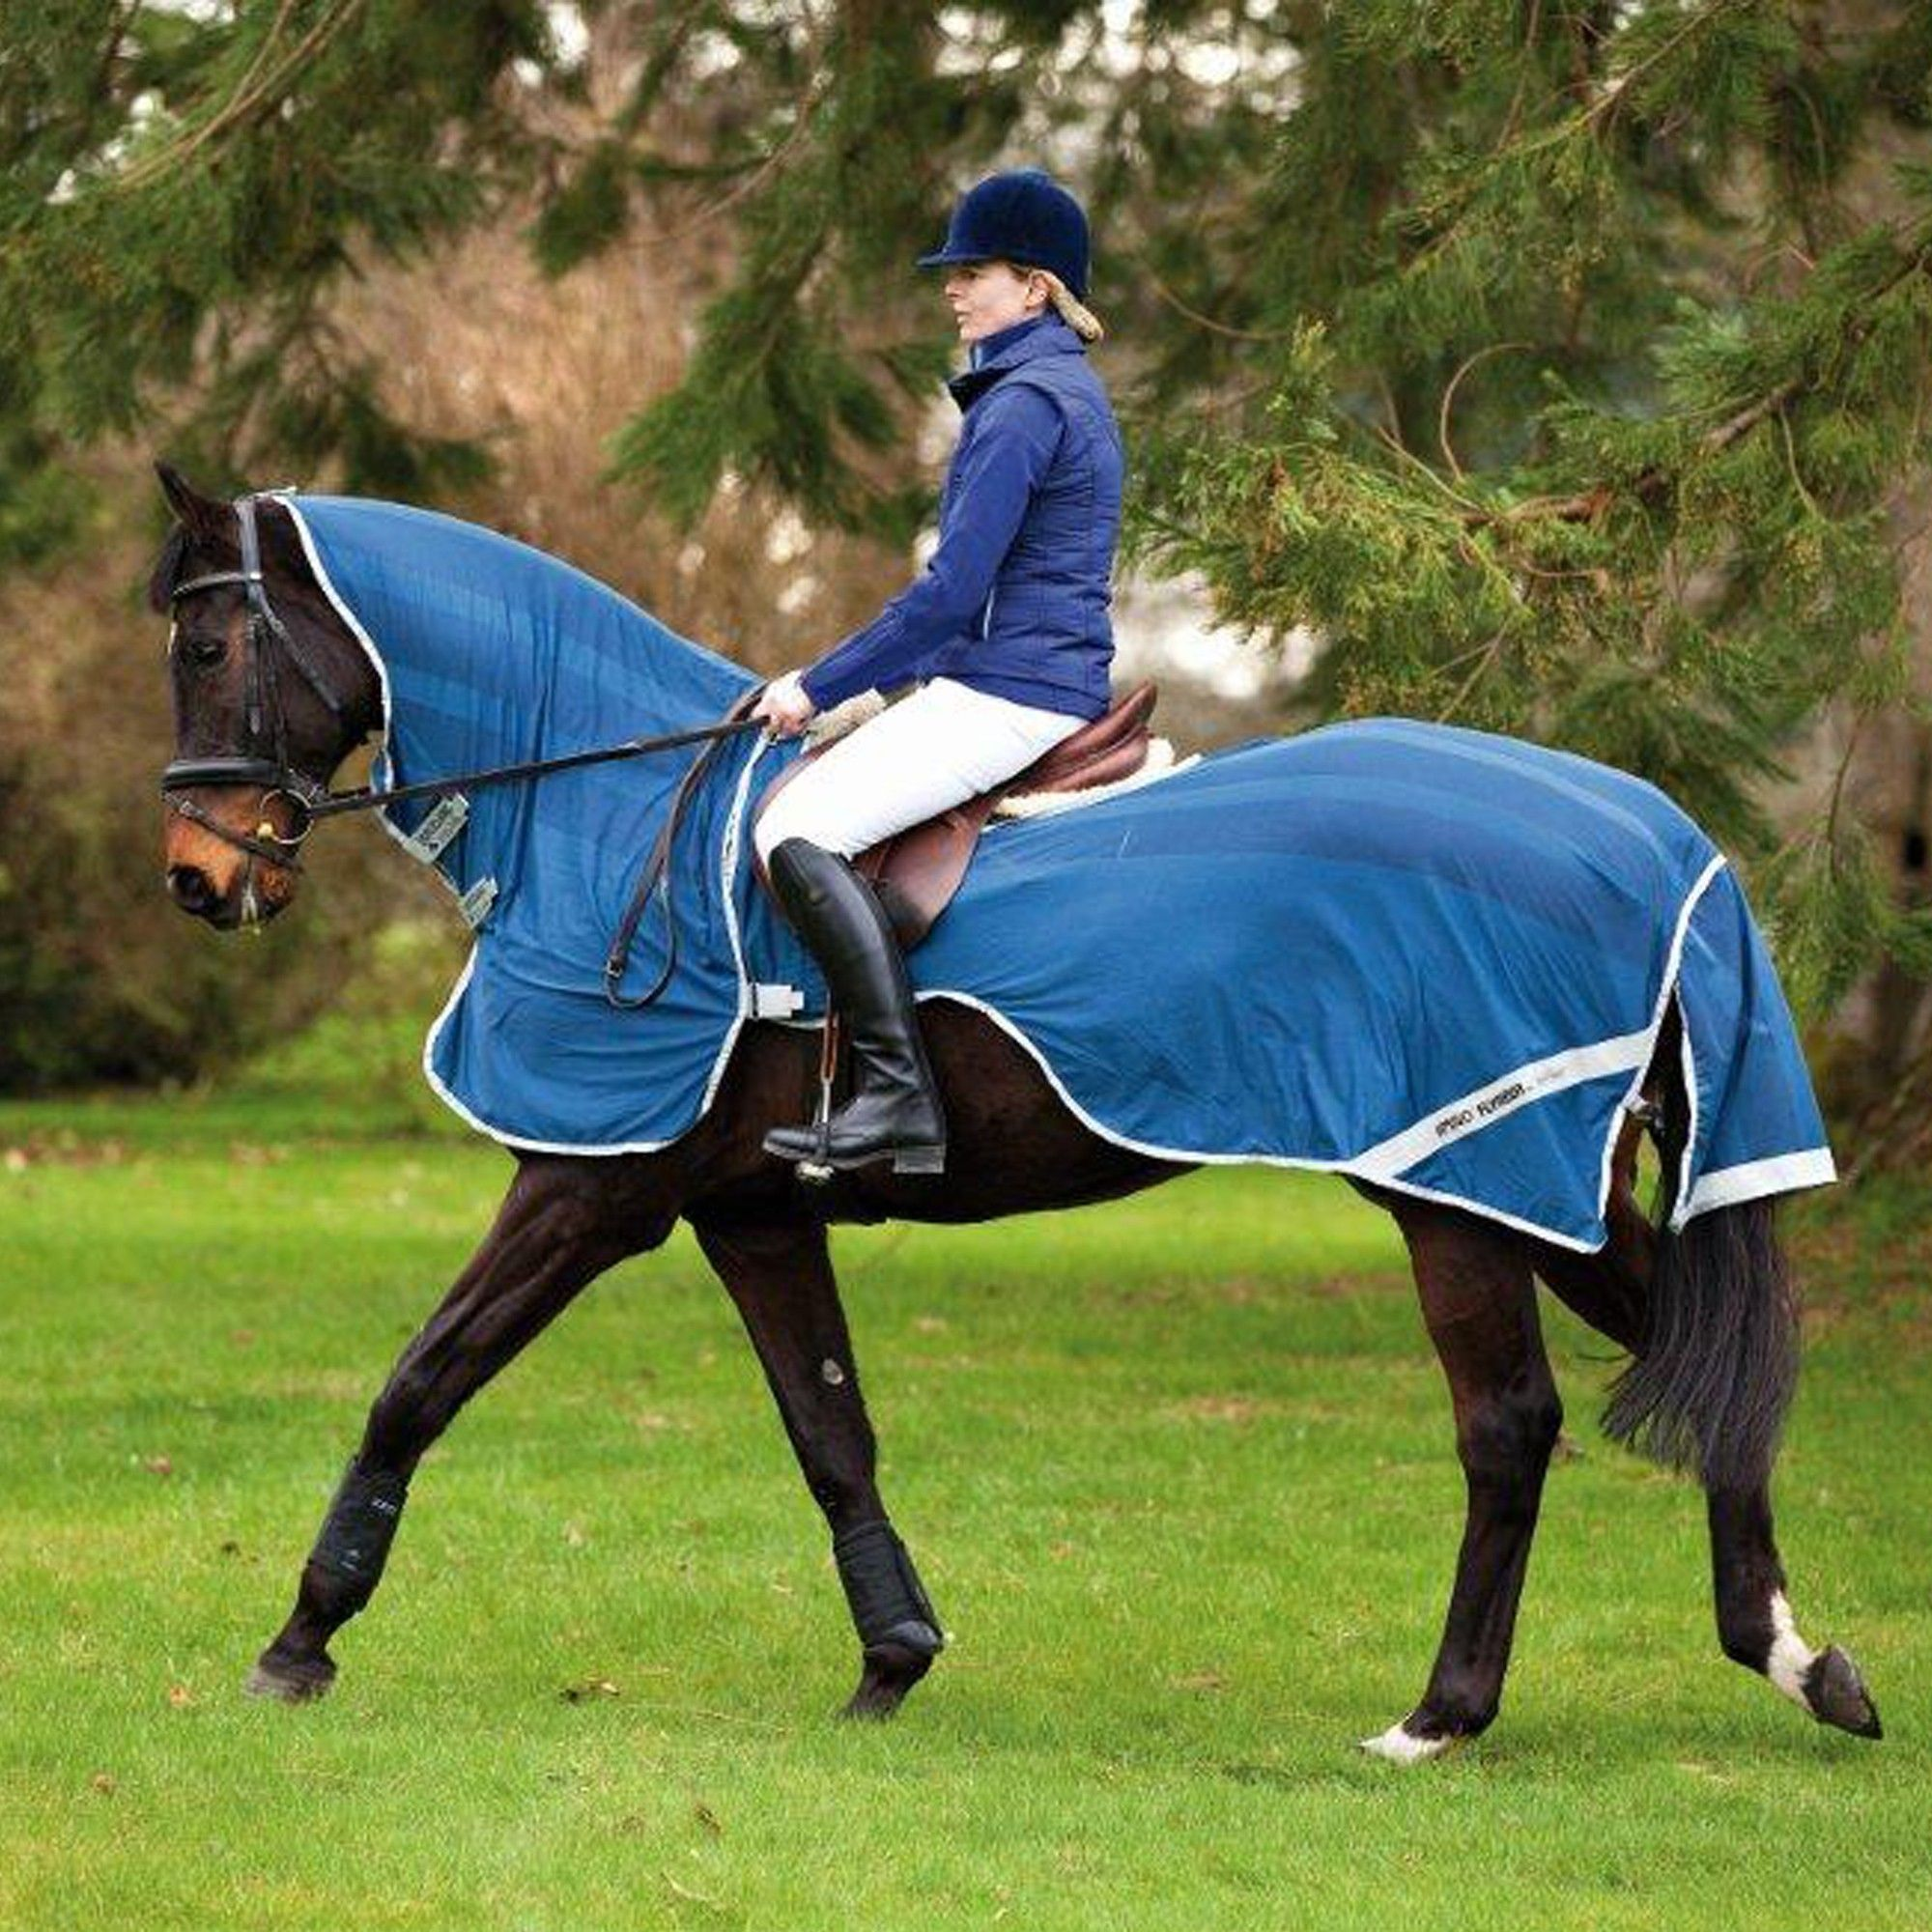 Amigo Fly Rider Extreamly ligh weight, with quick release velcro clousures for ease of fitting and safety. Loop on top of the hood to connect to the bridle. Contoured to fit around the saddle. Extra room in the hood to allow the horse to strech thier head and neck during exercise. Contoured area for riders leg. Reflective stirp for safety.